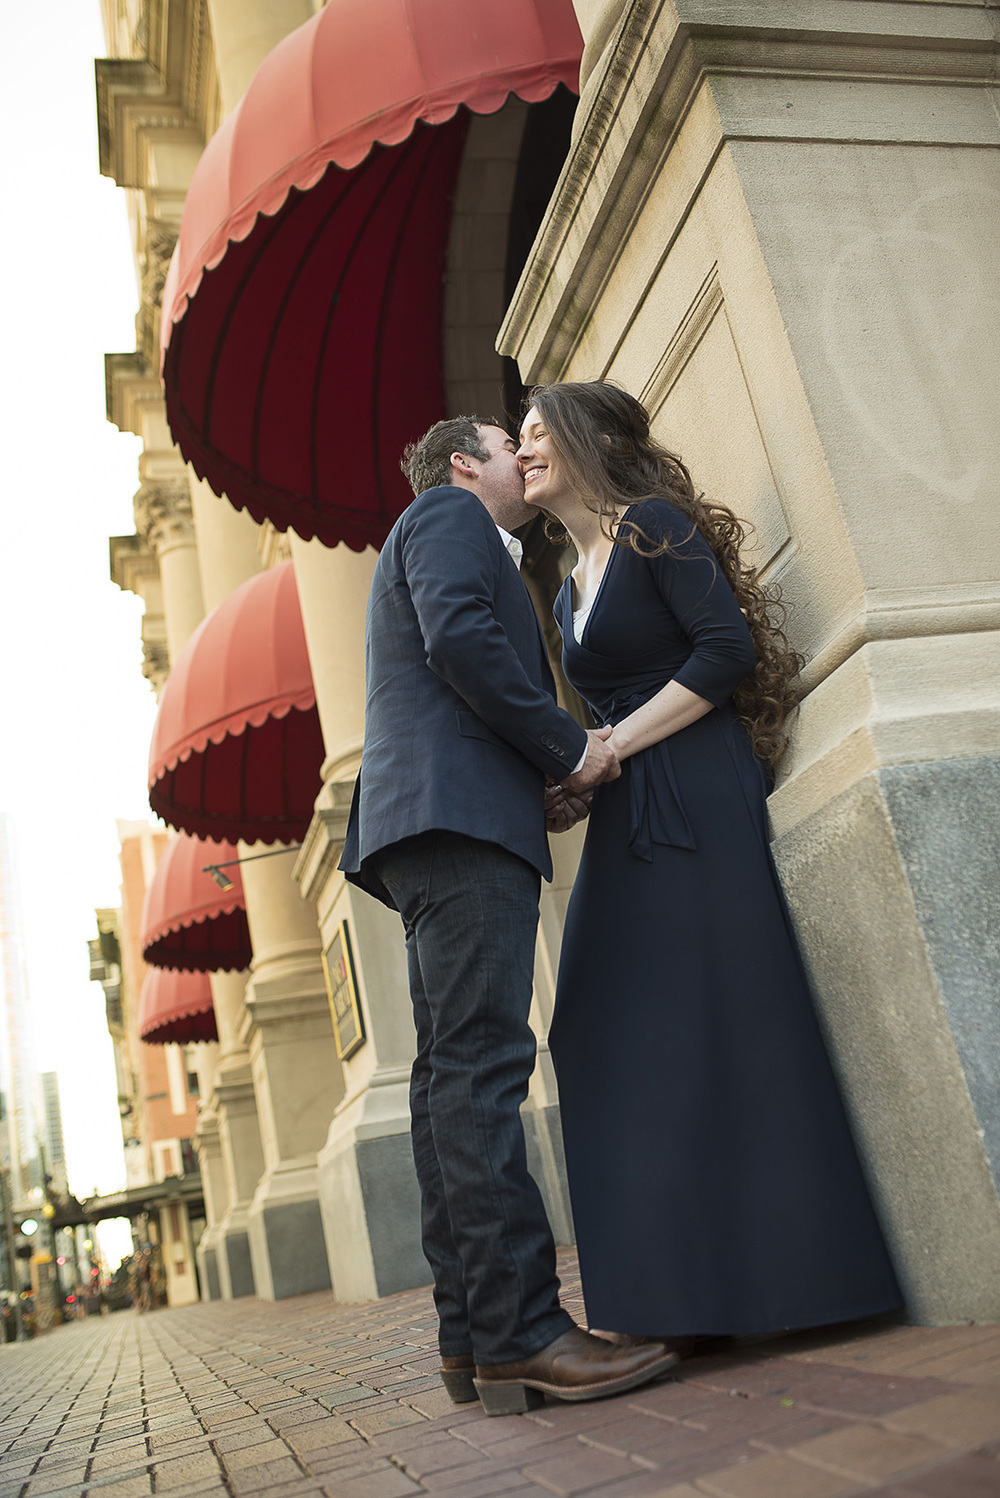 Houston hotel icon modern creative classy engagement photographer Kate_Lawrence_094sm.jpg